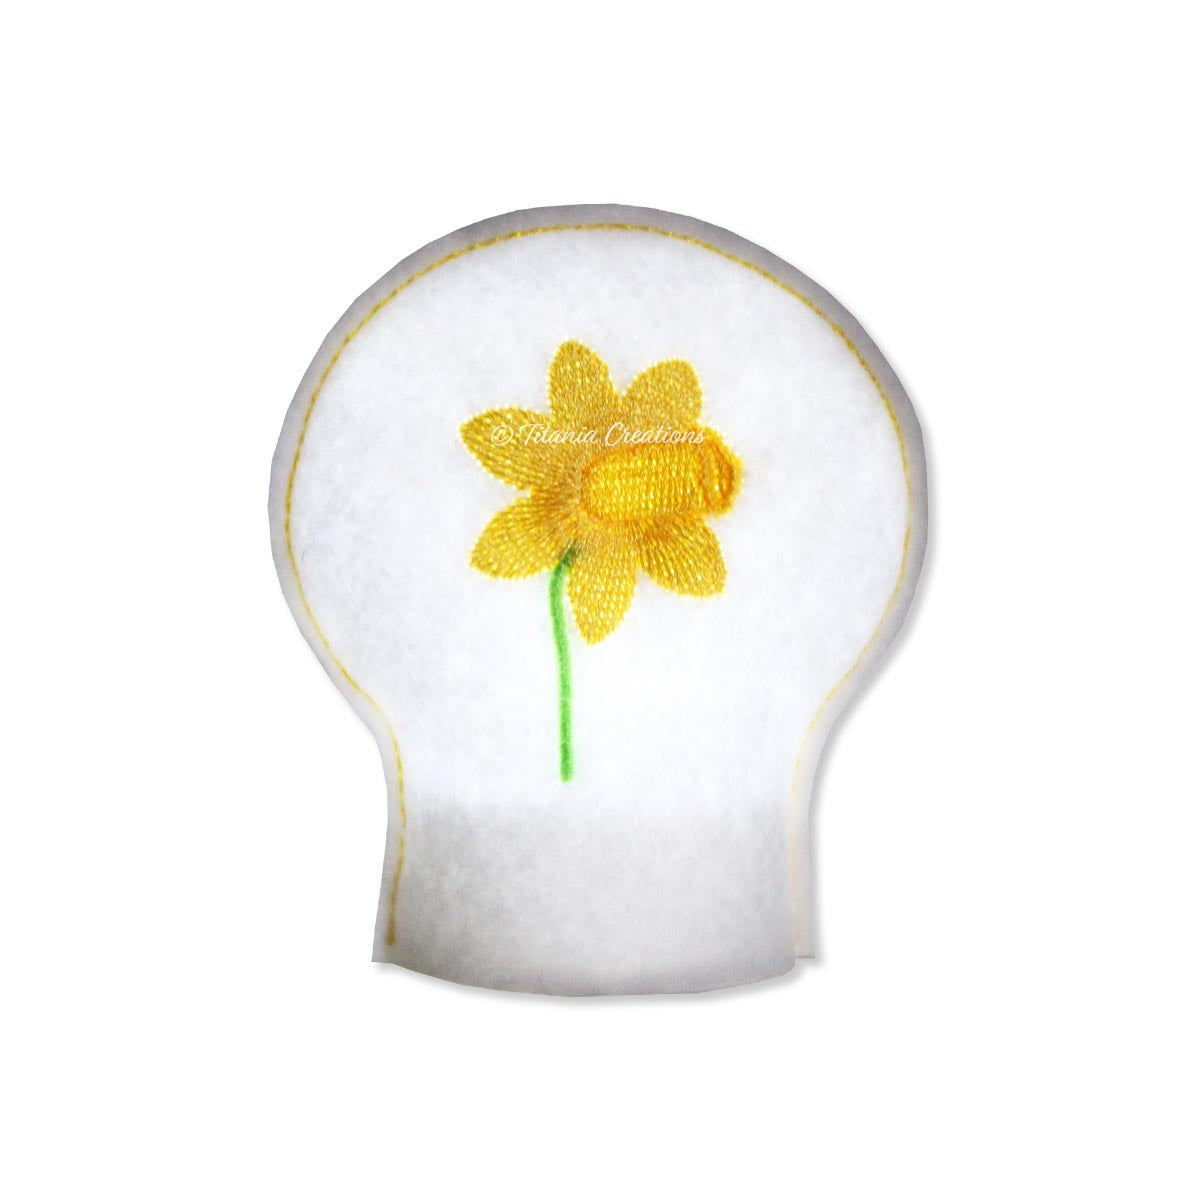 ITH Daffodil Flower for March Tea Light Cover 4x4